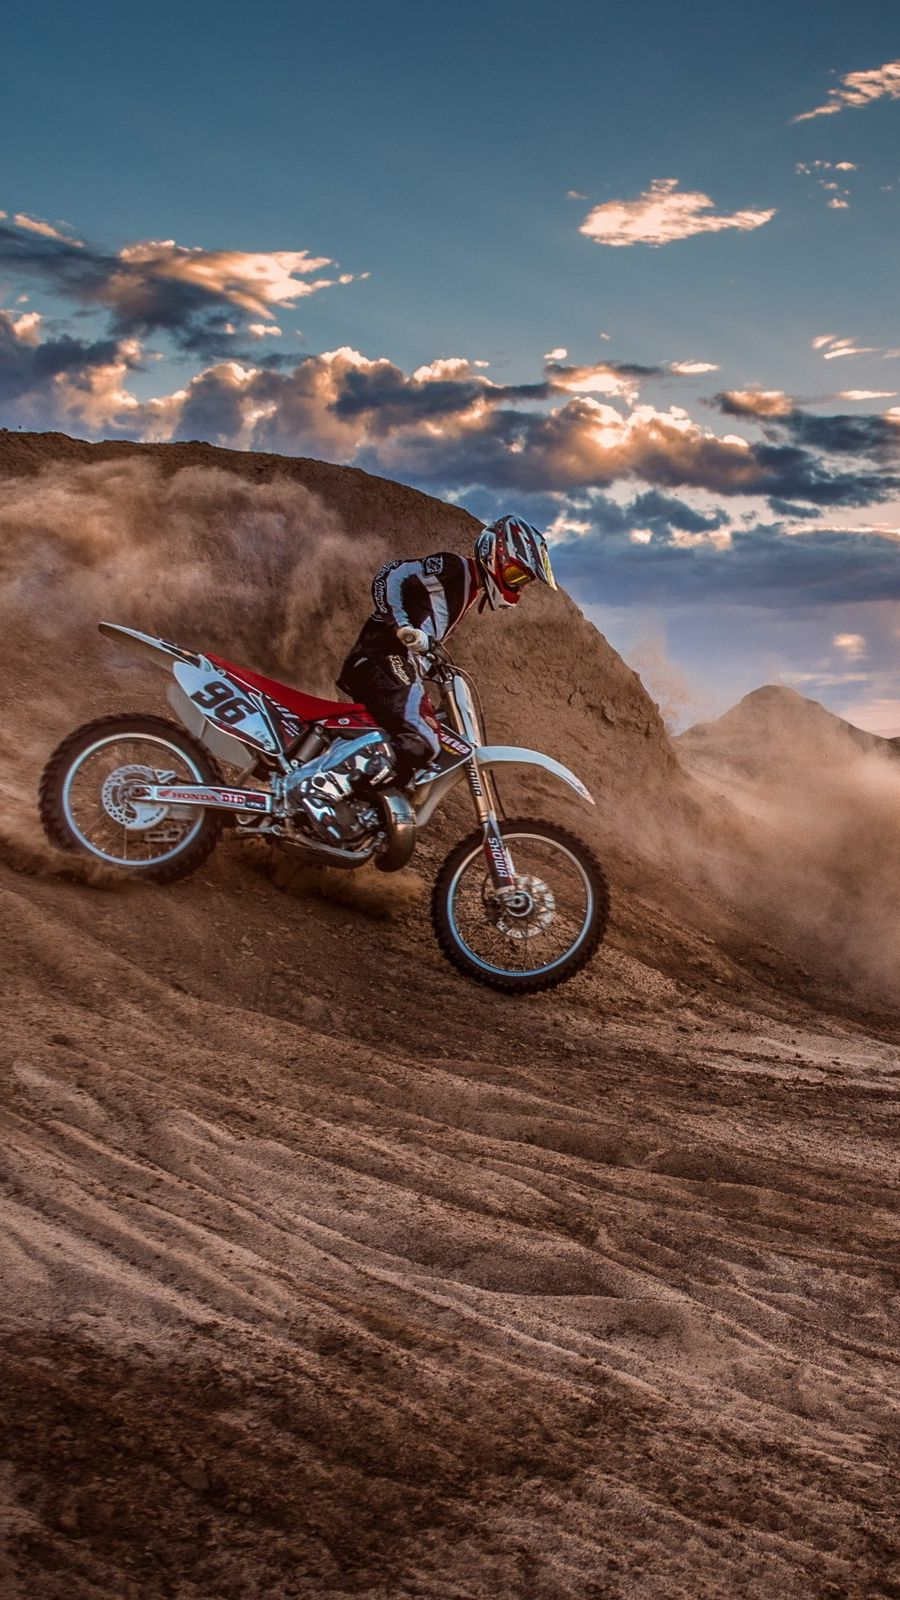 Motocross Stunt Iphone Wallpaper Motorcycle Wallpaper Motocross